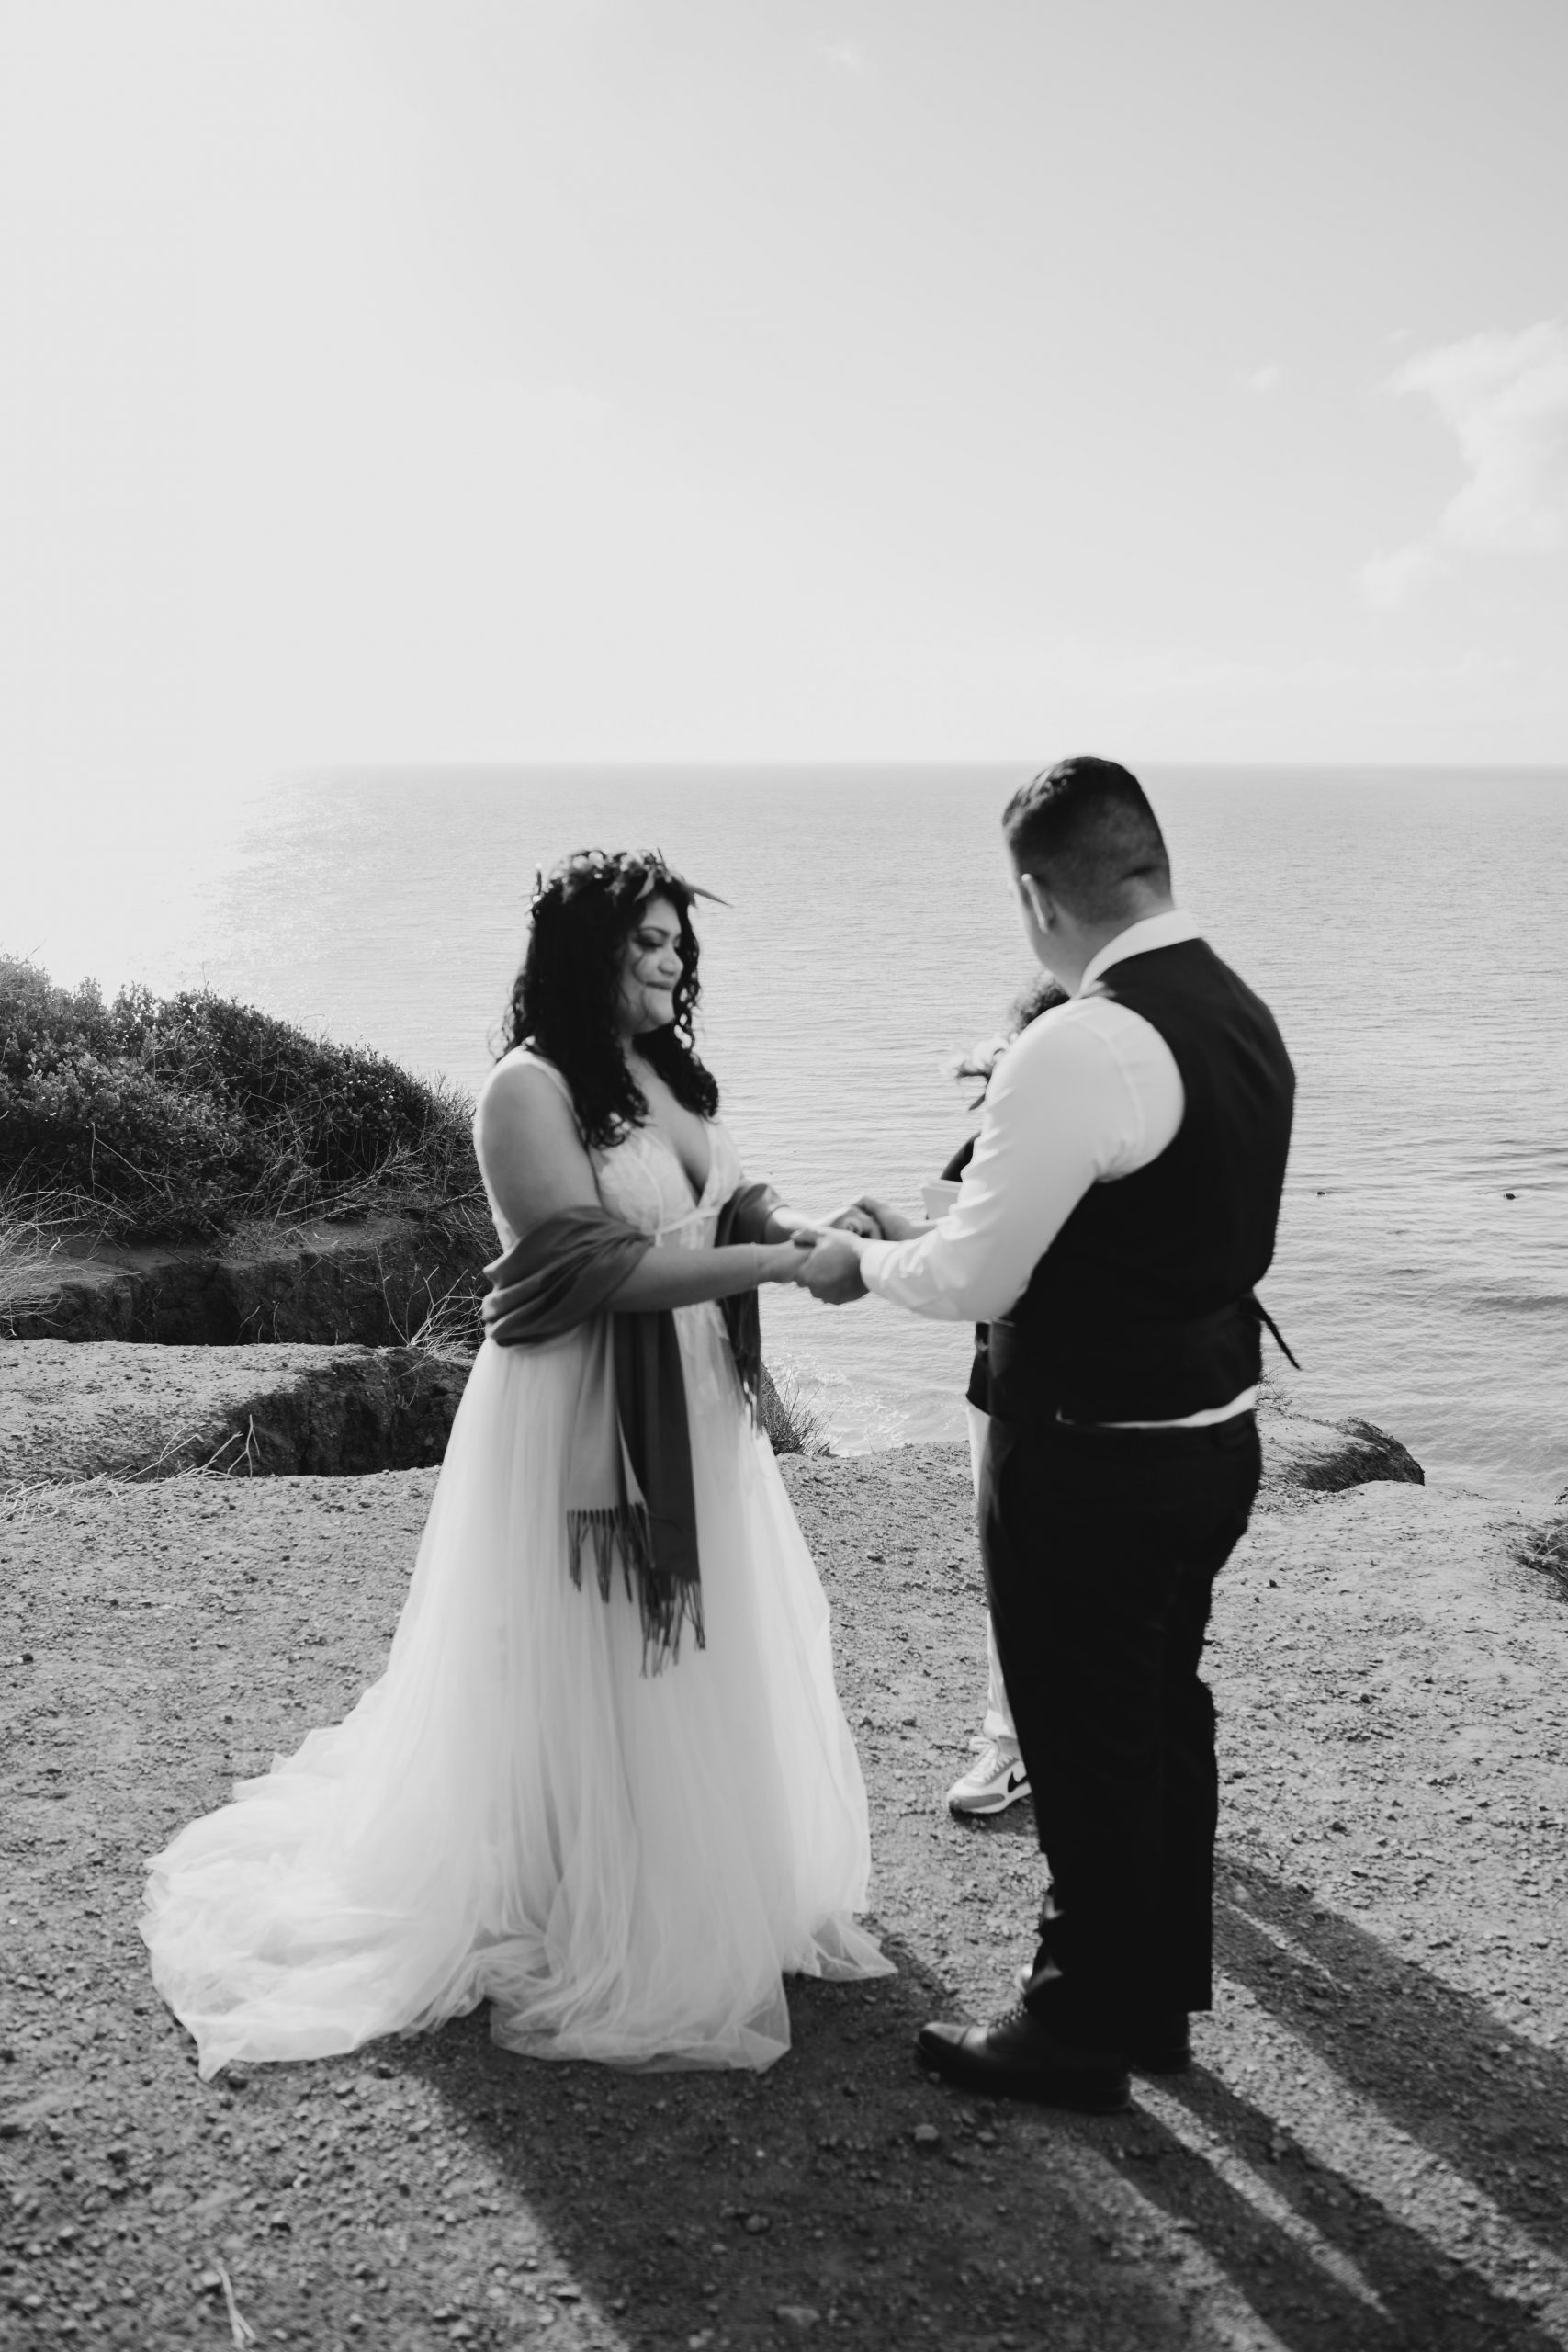 El Matador Beach Elopement in Malibu, image by Fatima Elreda Photo